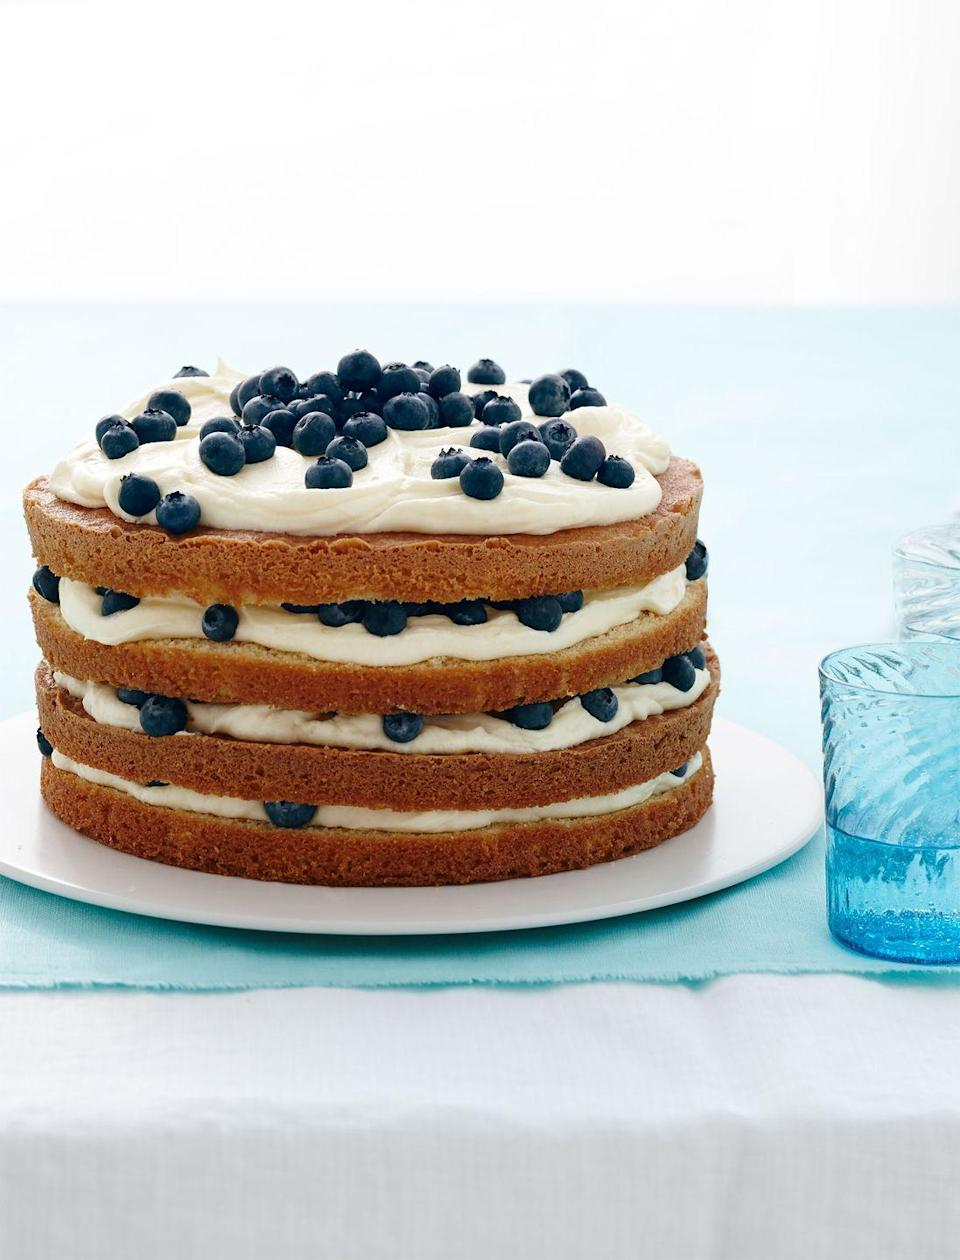 "<p>Throw some strawberries on top of this four-layer cake for the full Fourth effect.</p><p><a href=""https://www.goodhousekeeping.com/food-recipes/a15612/lemon-blueberry-layer-cake-recipe-wdy0414/"" rel=""nofollow noopener"" target=""_blank"" data-ylk=""slk:Get the recipe for Lemon Blueberry Layer Cake »"" class=""link rapid-noclick-resp""><em>Get the recipe for Lemon Blueberry Layer Cake »</em></a></p>"